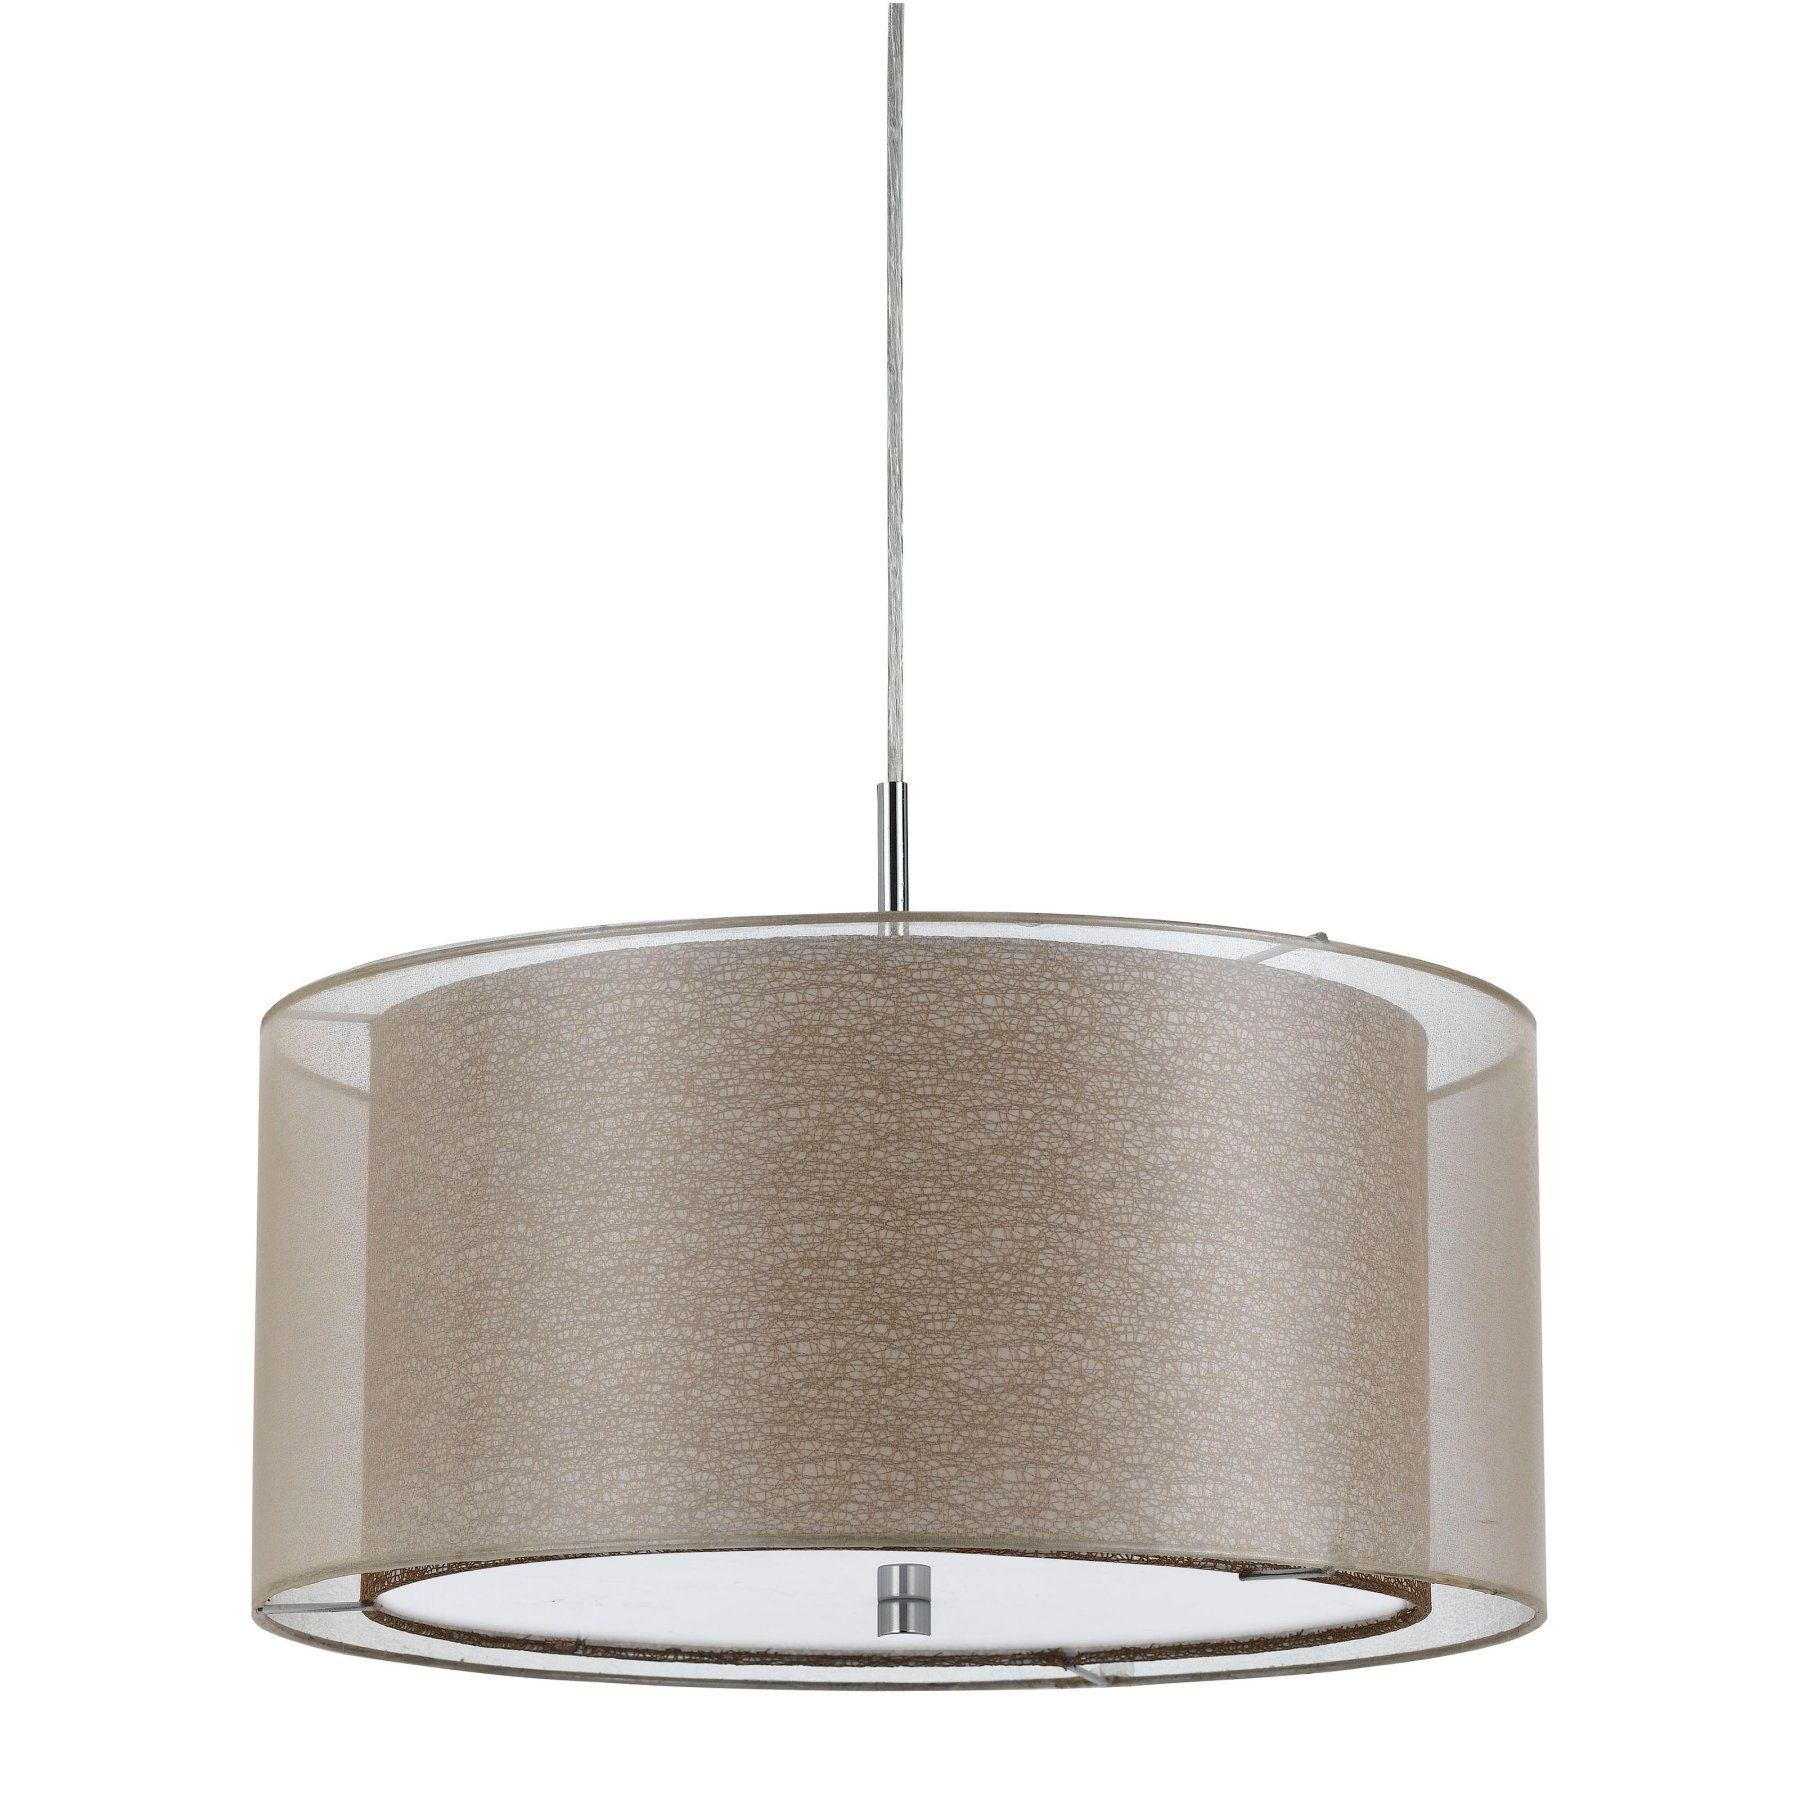 Cal Lighting Nandi Fx 35271P Pendant  Fx 35271P